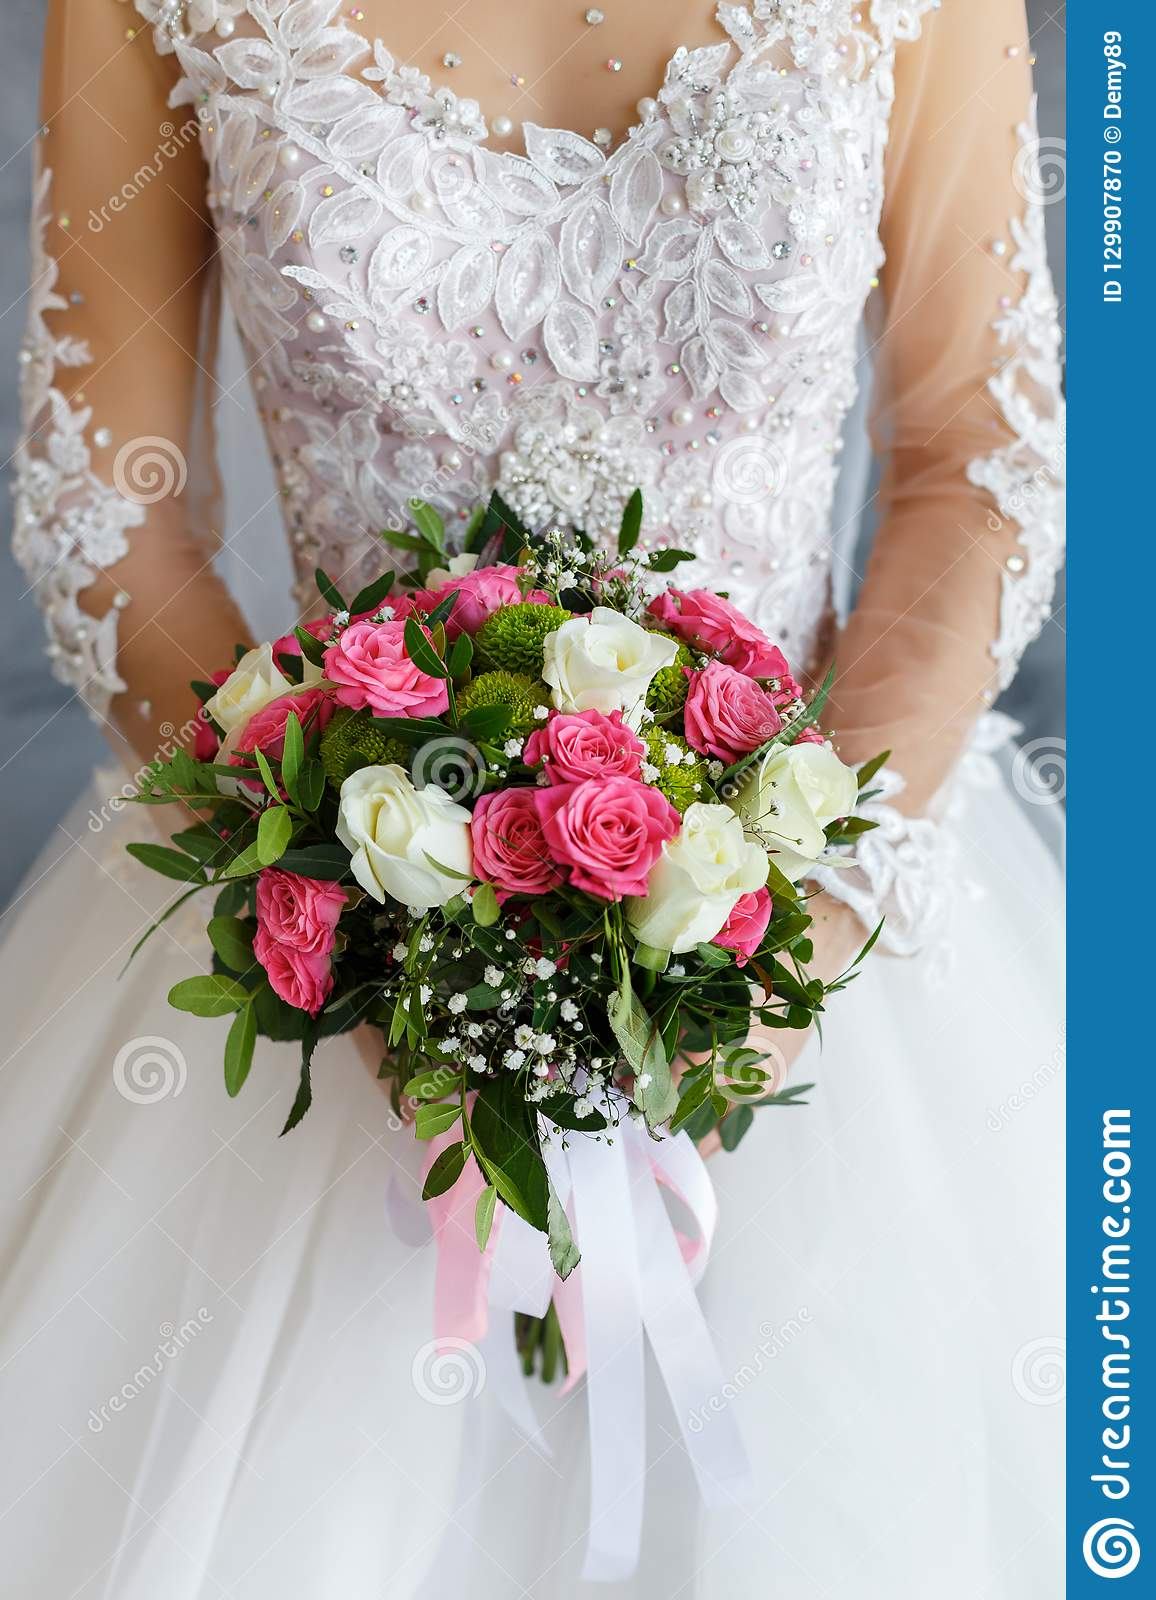 Bride In A Lace Dress Holding A Wedding Bouquet Of White And Pink